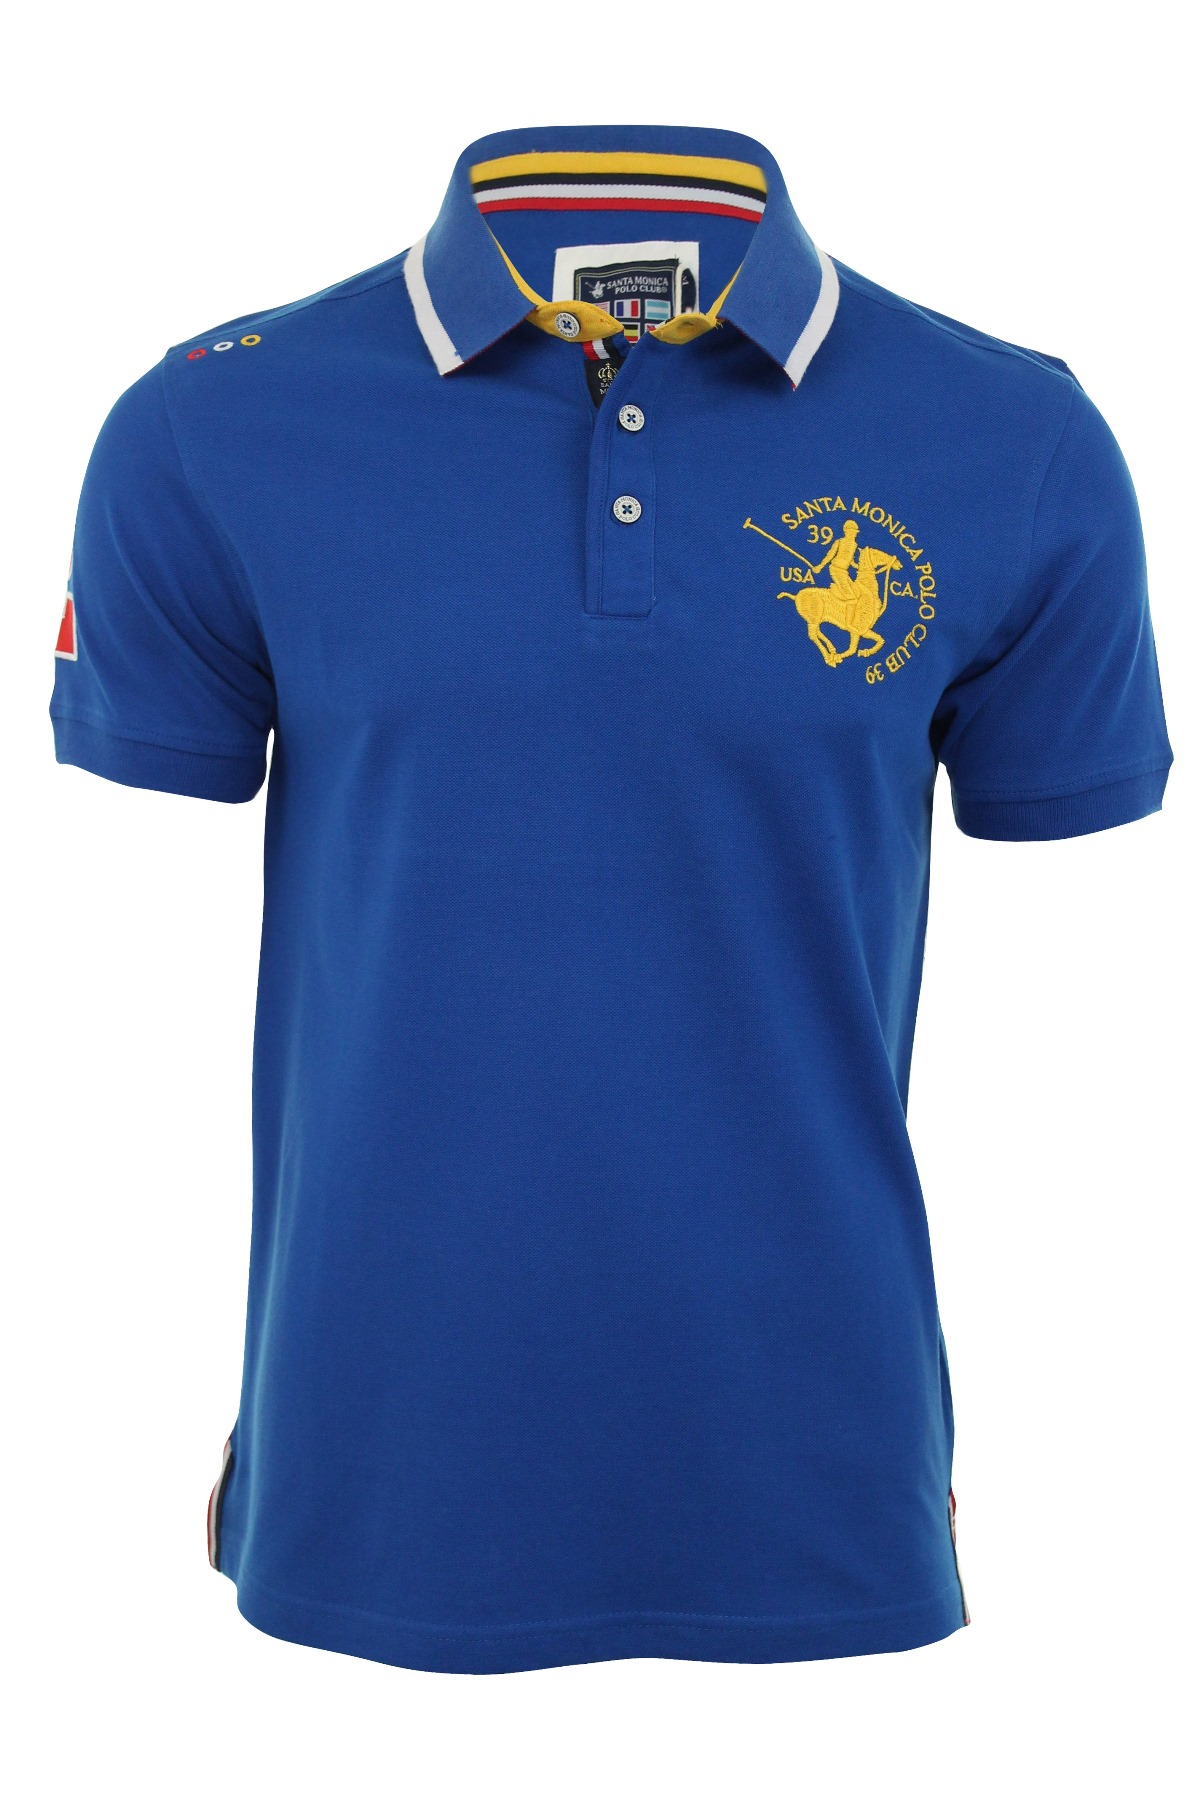 mens pique polo shirts santa monica polo club t shirts